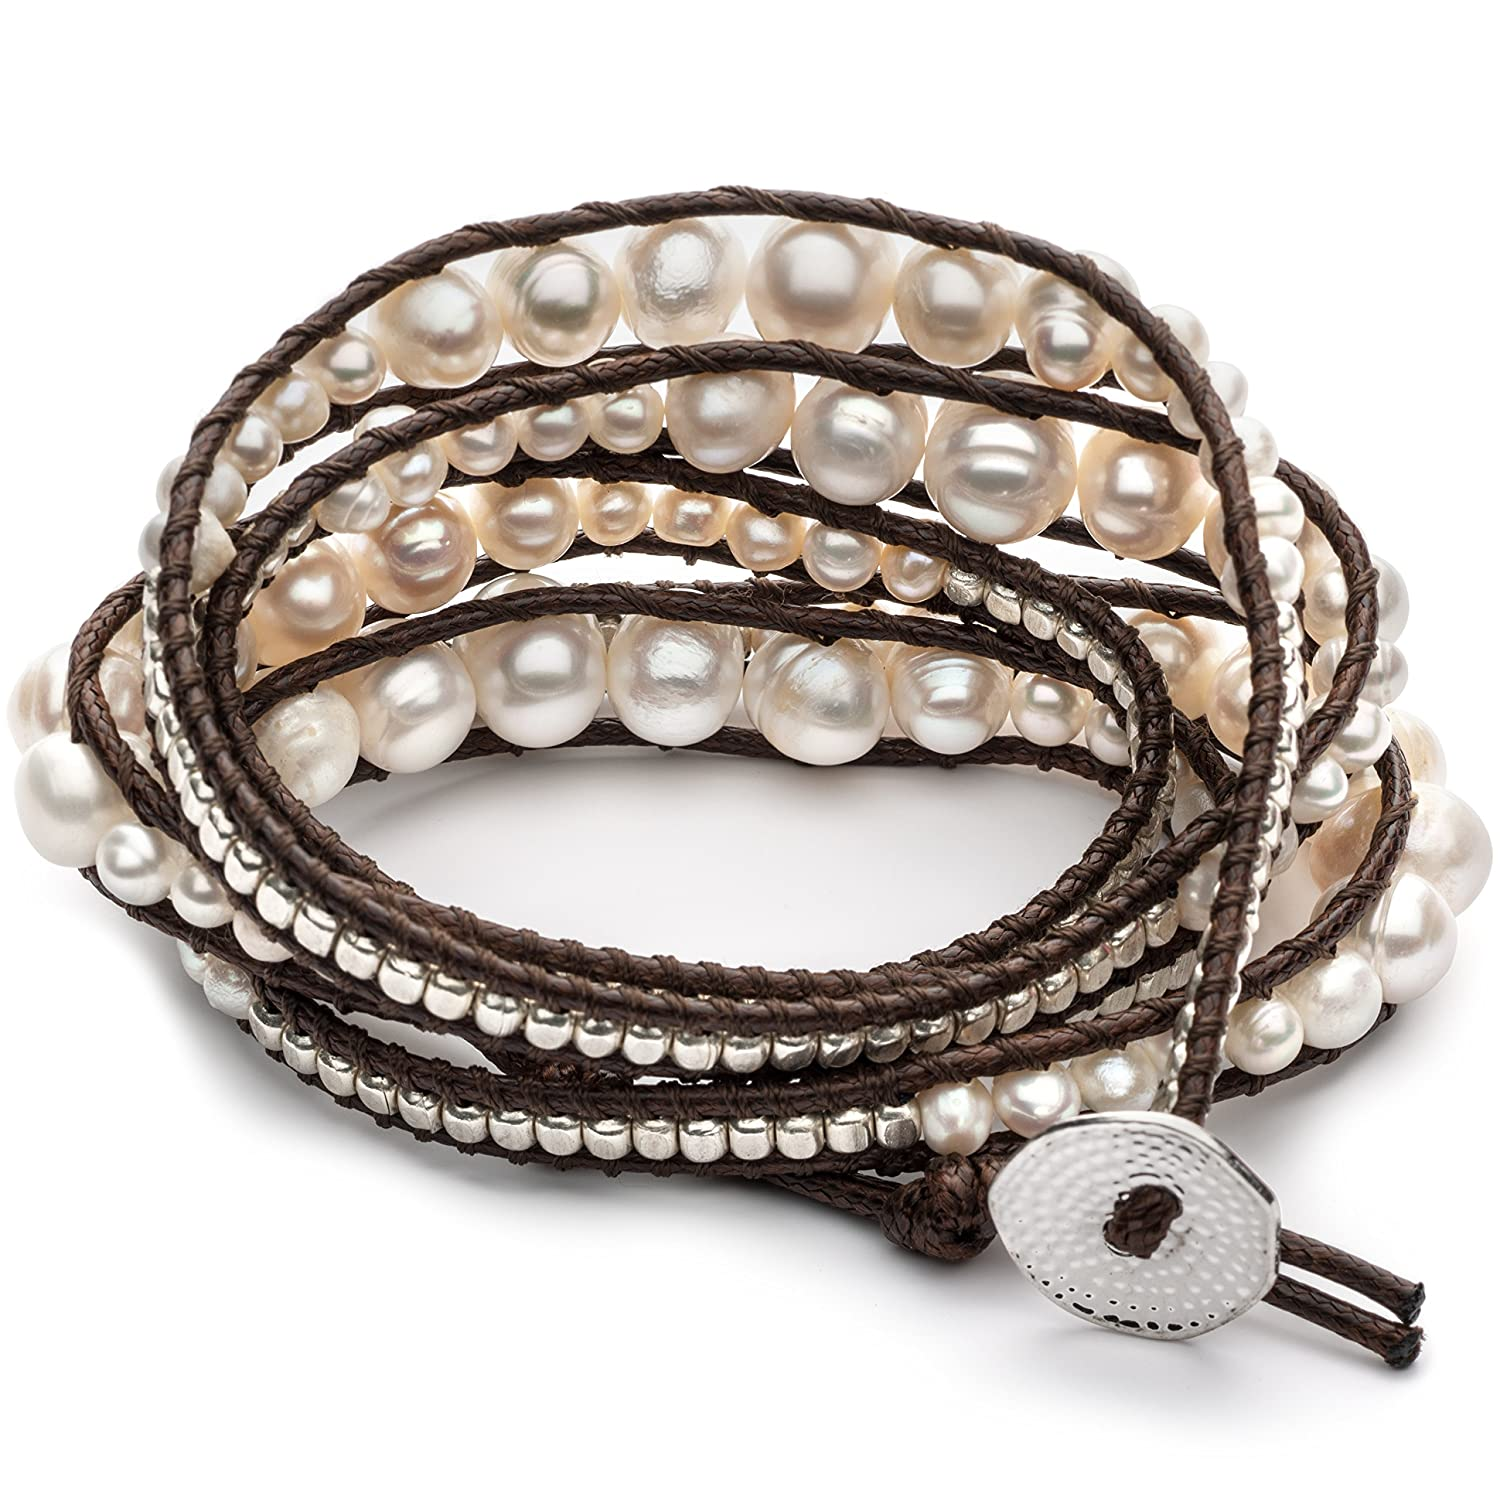 GingerBird Jewelry Marshmallow Wrap Women s Freshwater Cultured Pearls Handmade Bracelet. 32 Inches